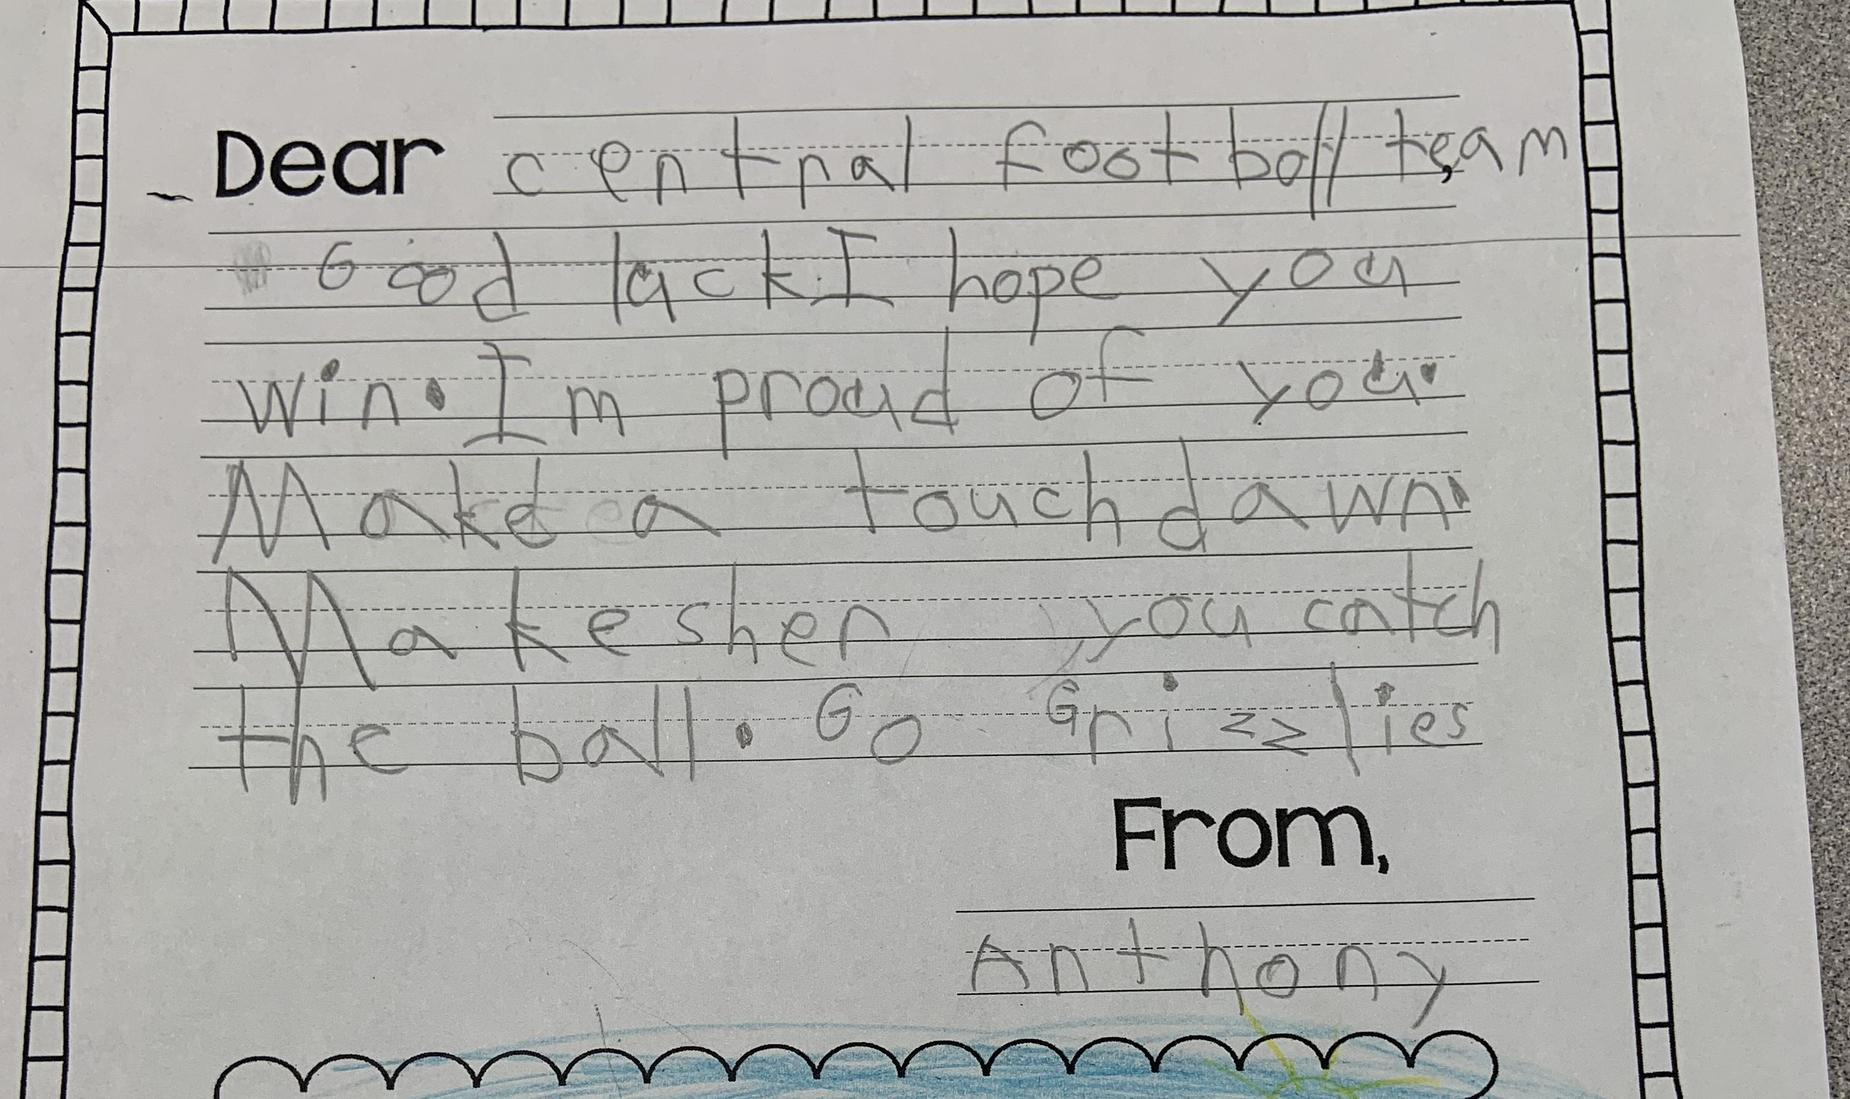 A good luck letter to the Central High football team from a student at Steinbeck